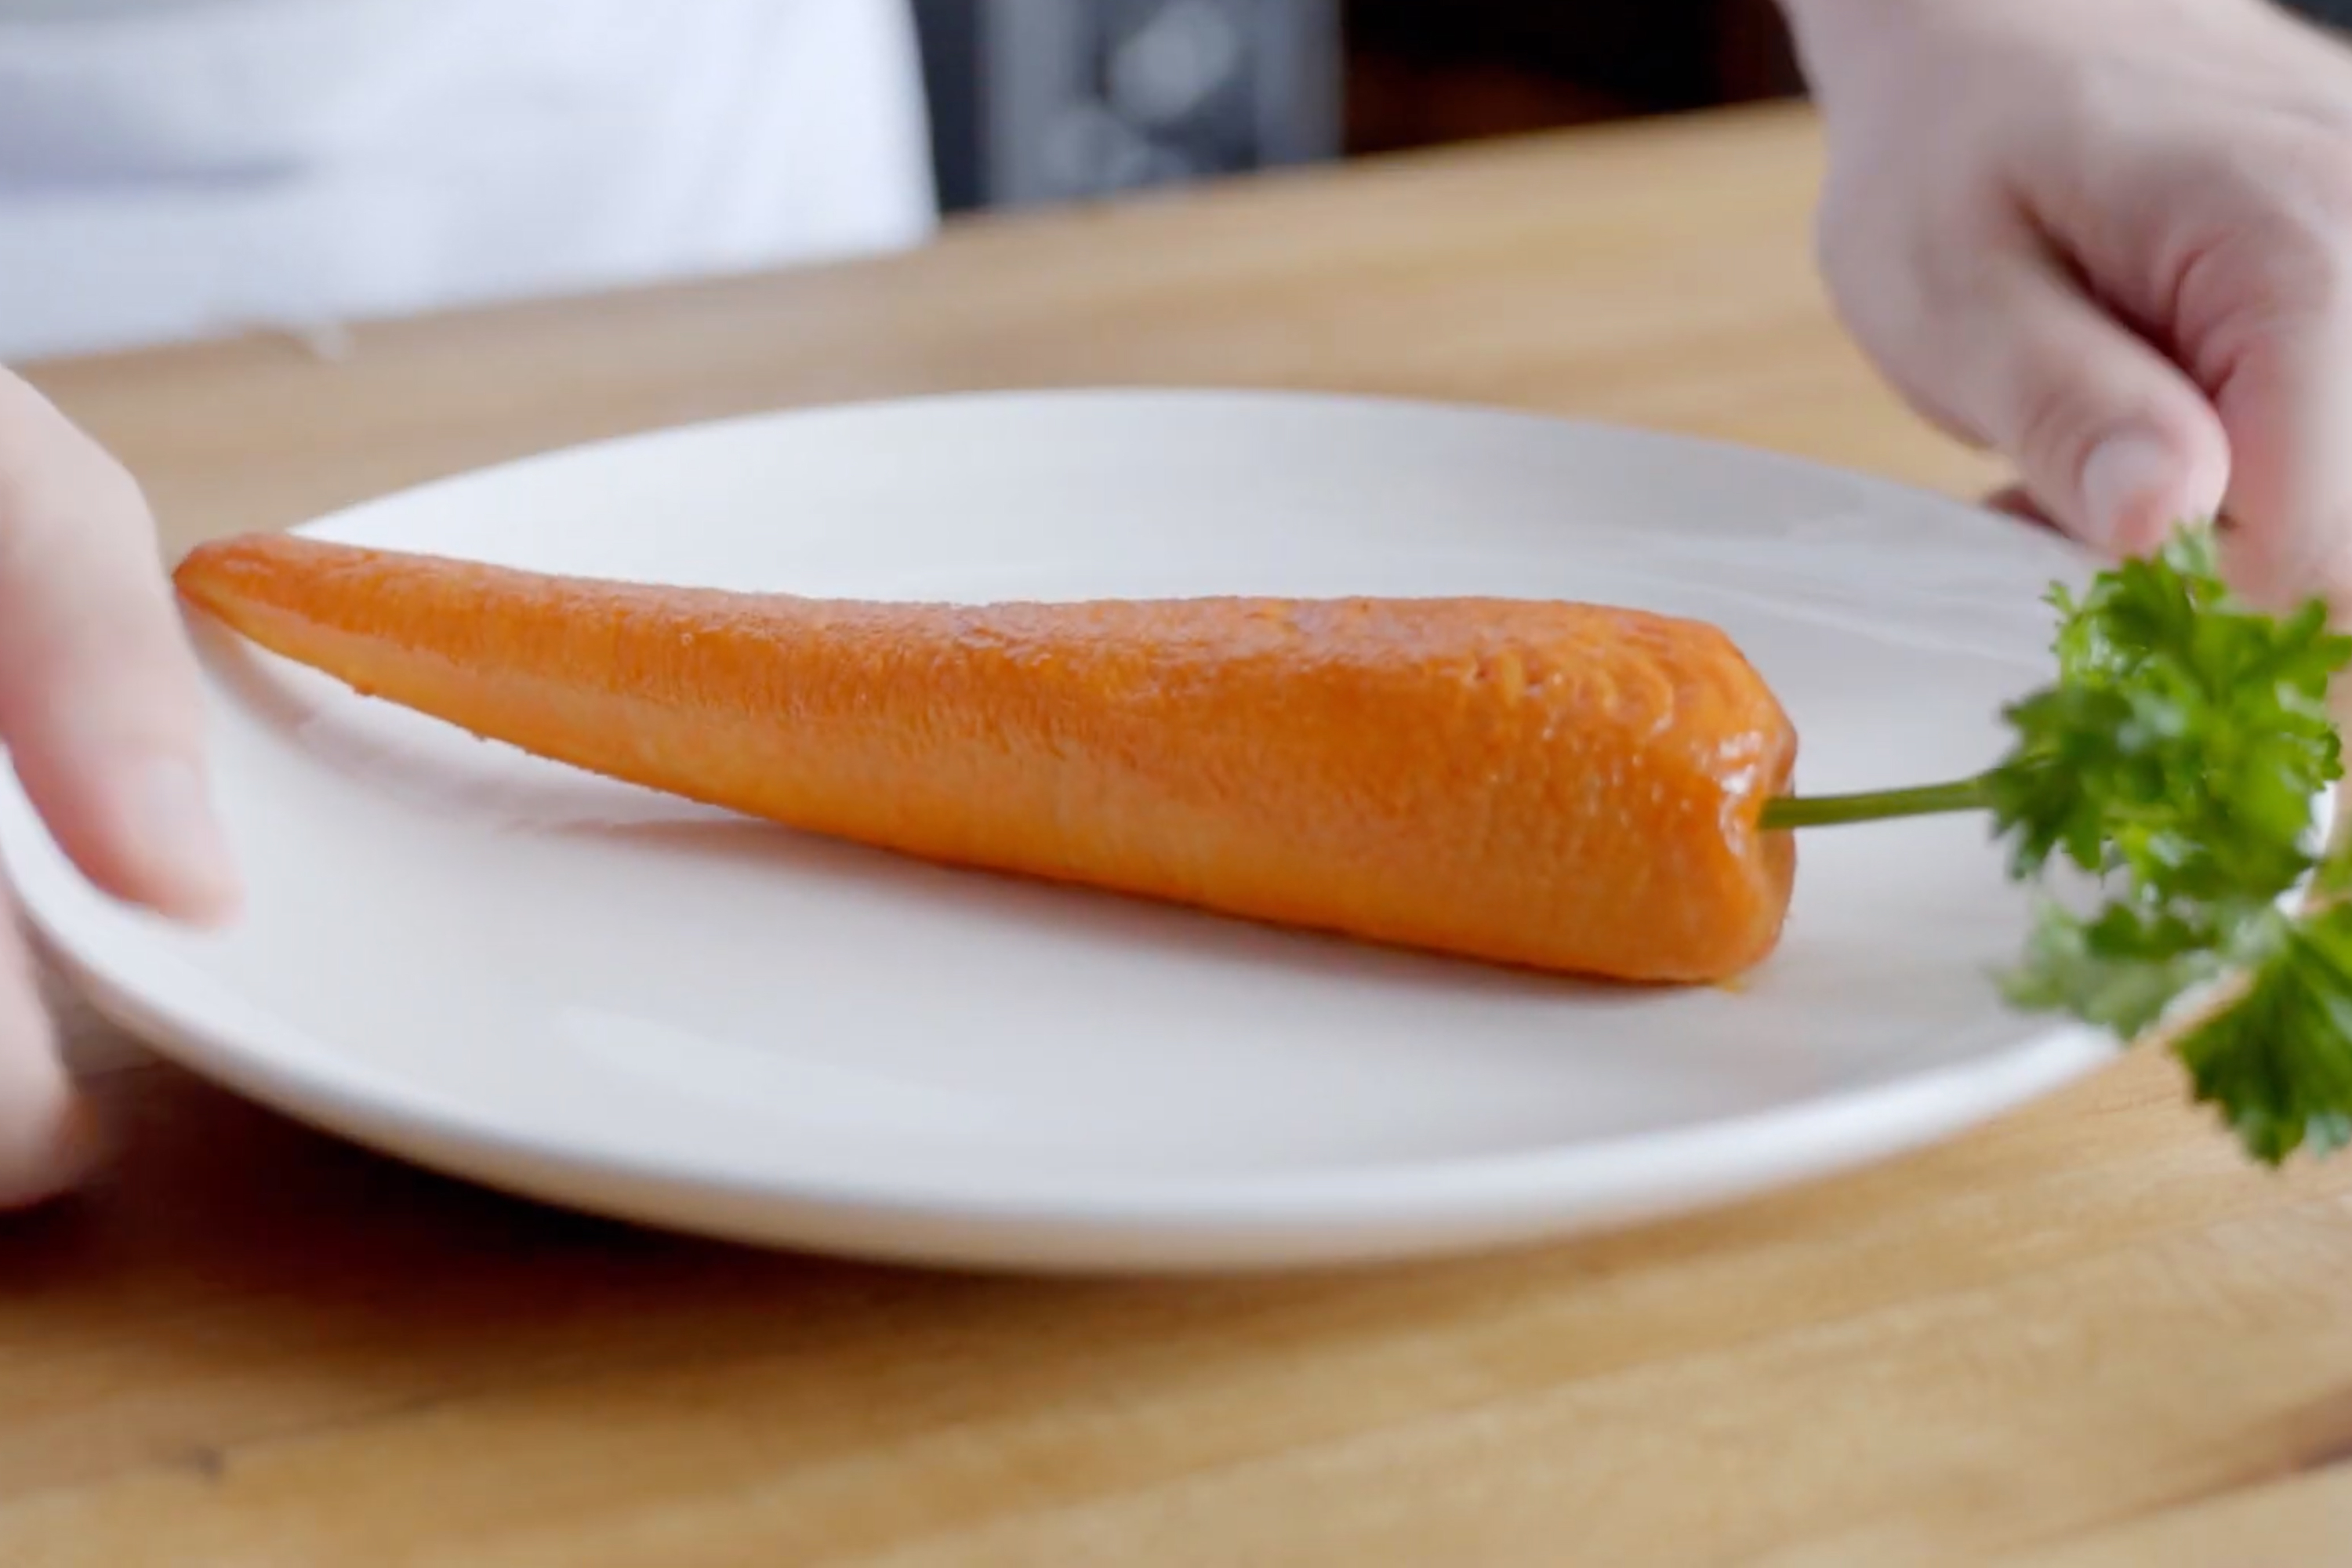 Arby's made a 'carrot' out of meat, and it's very on-brand: Thursday Wake-Up Call